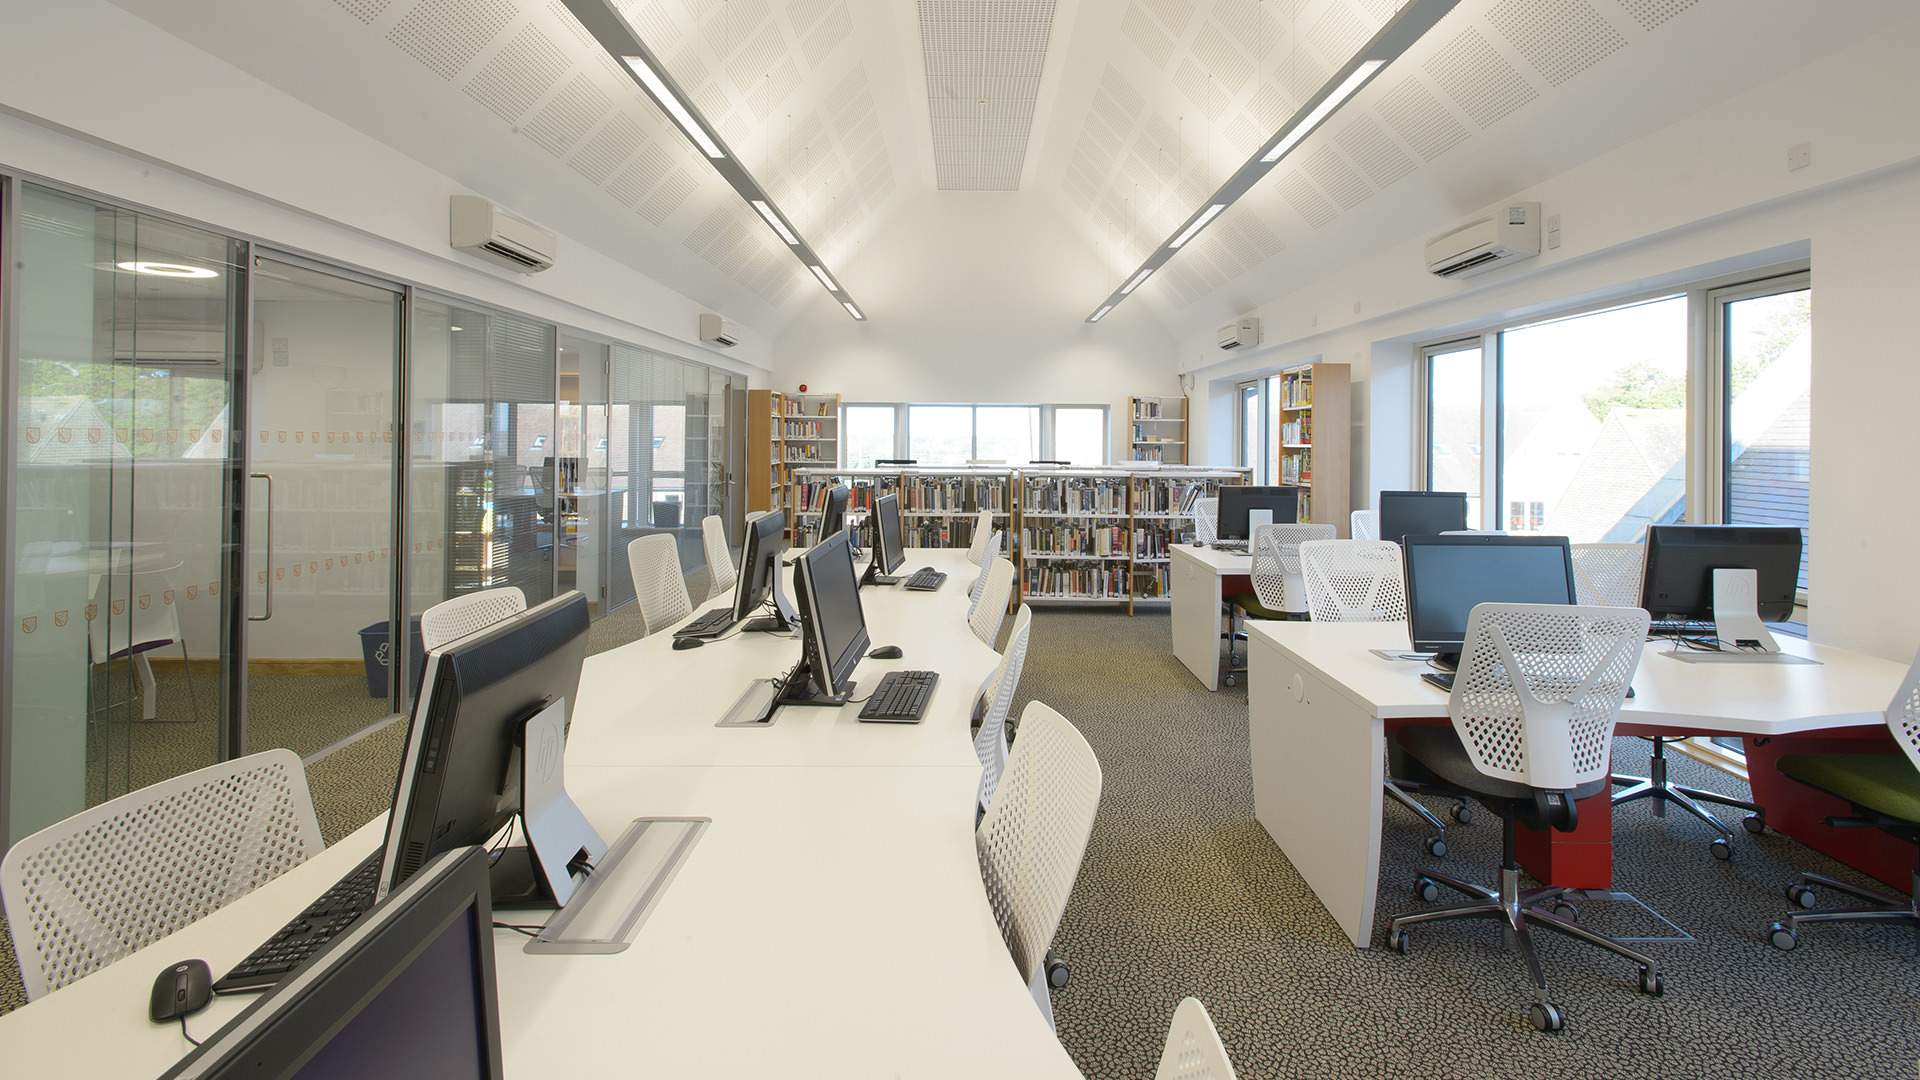 New Library And Sixth Form Study Centre Hurstpierpoint